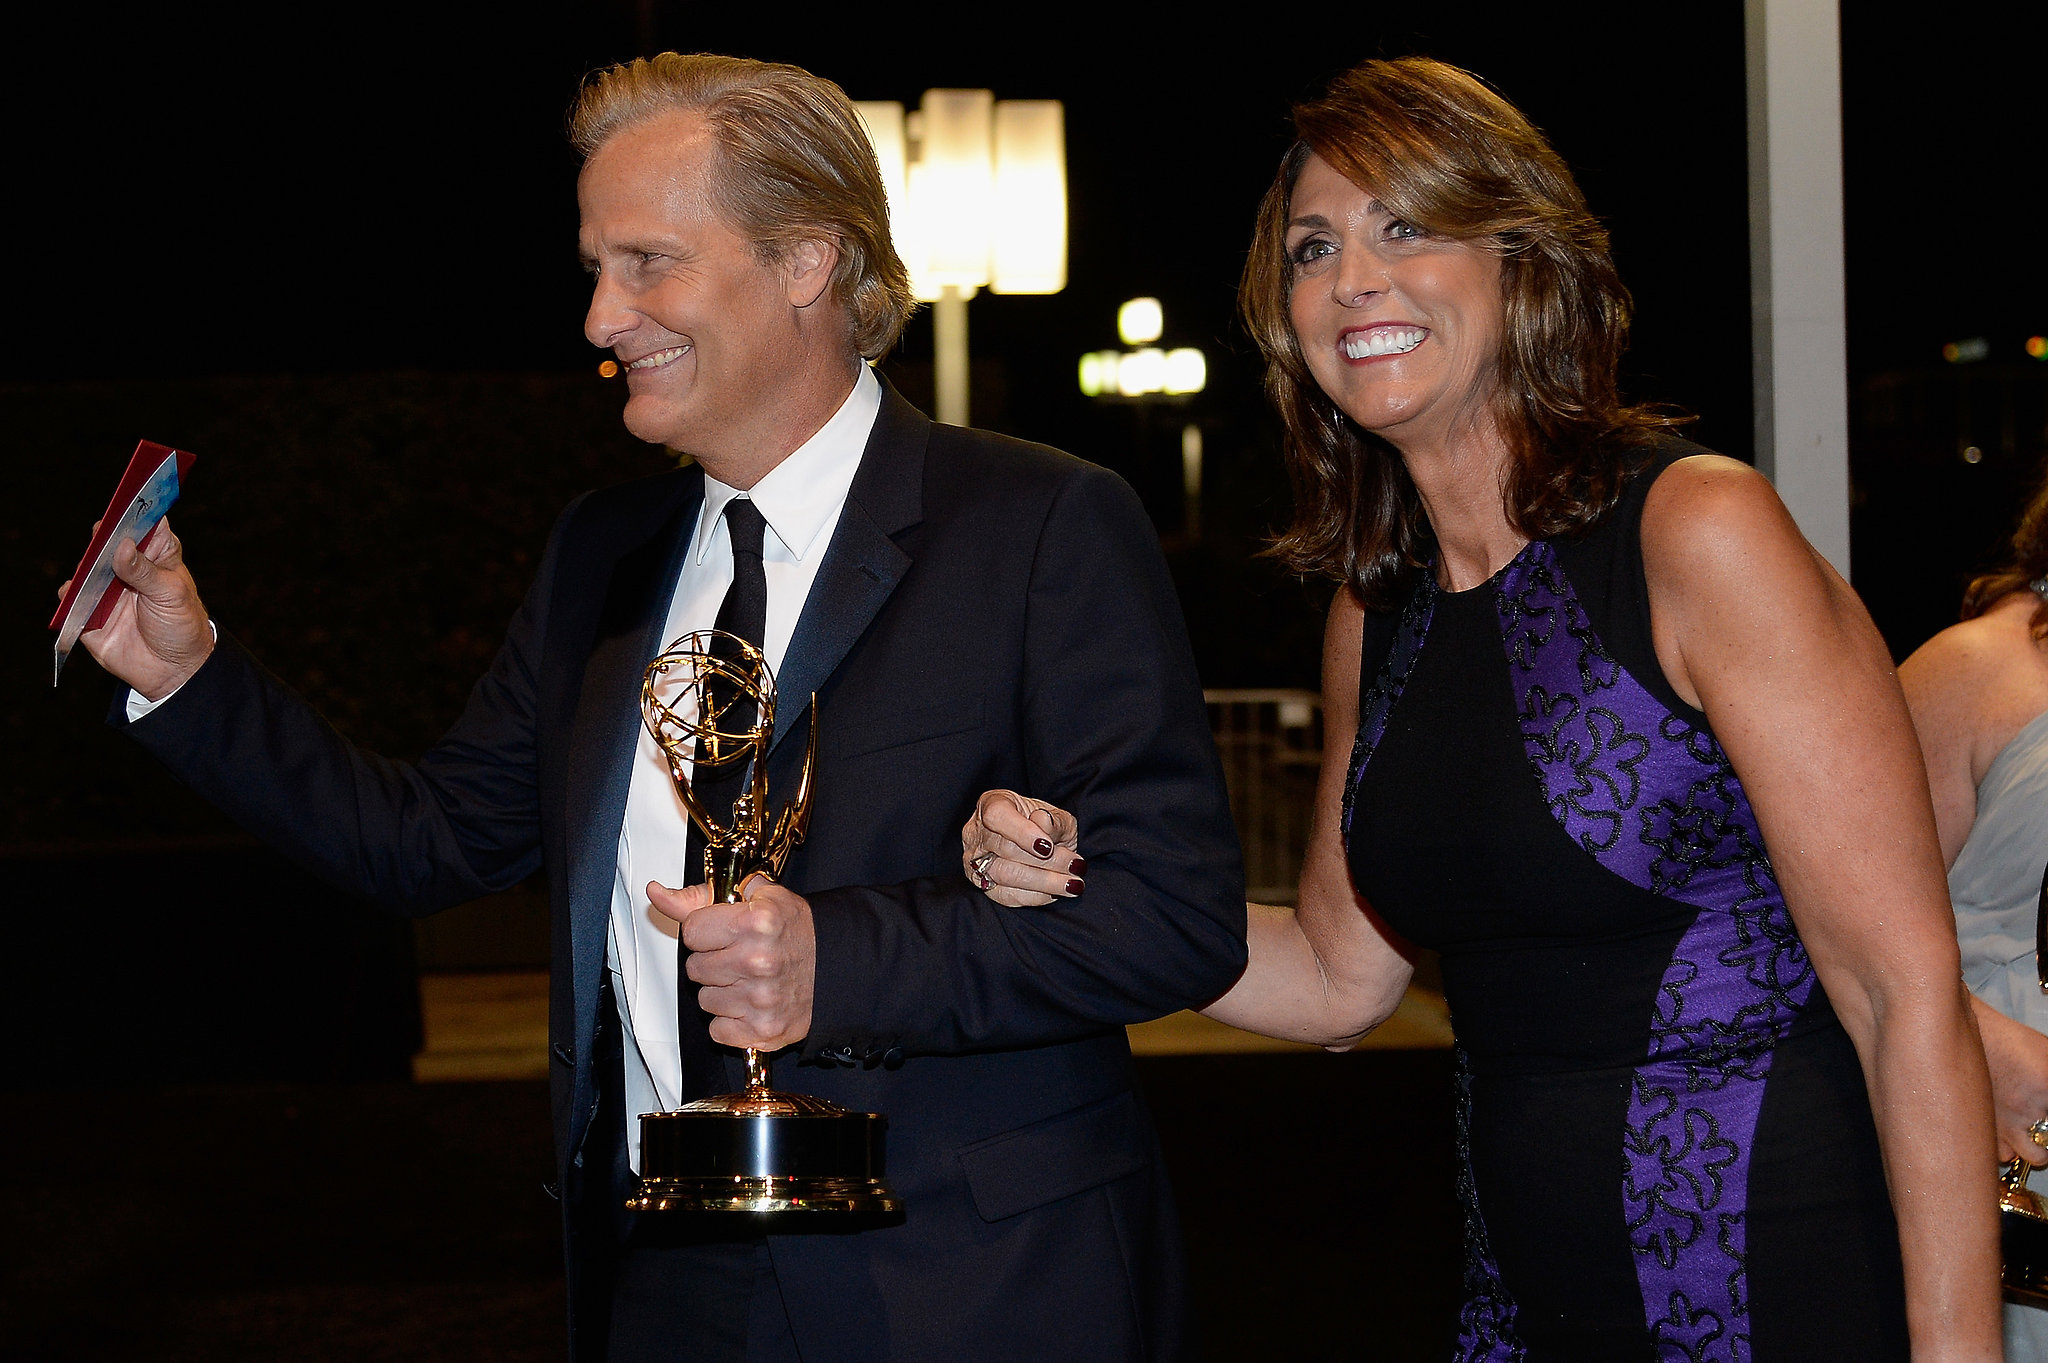 Jeff Daniels celebrated his win with wife, Kathleen Treado.